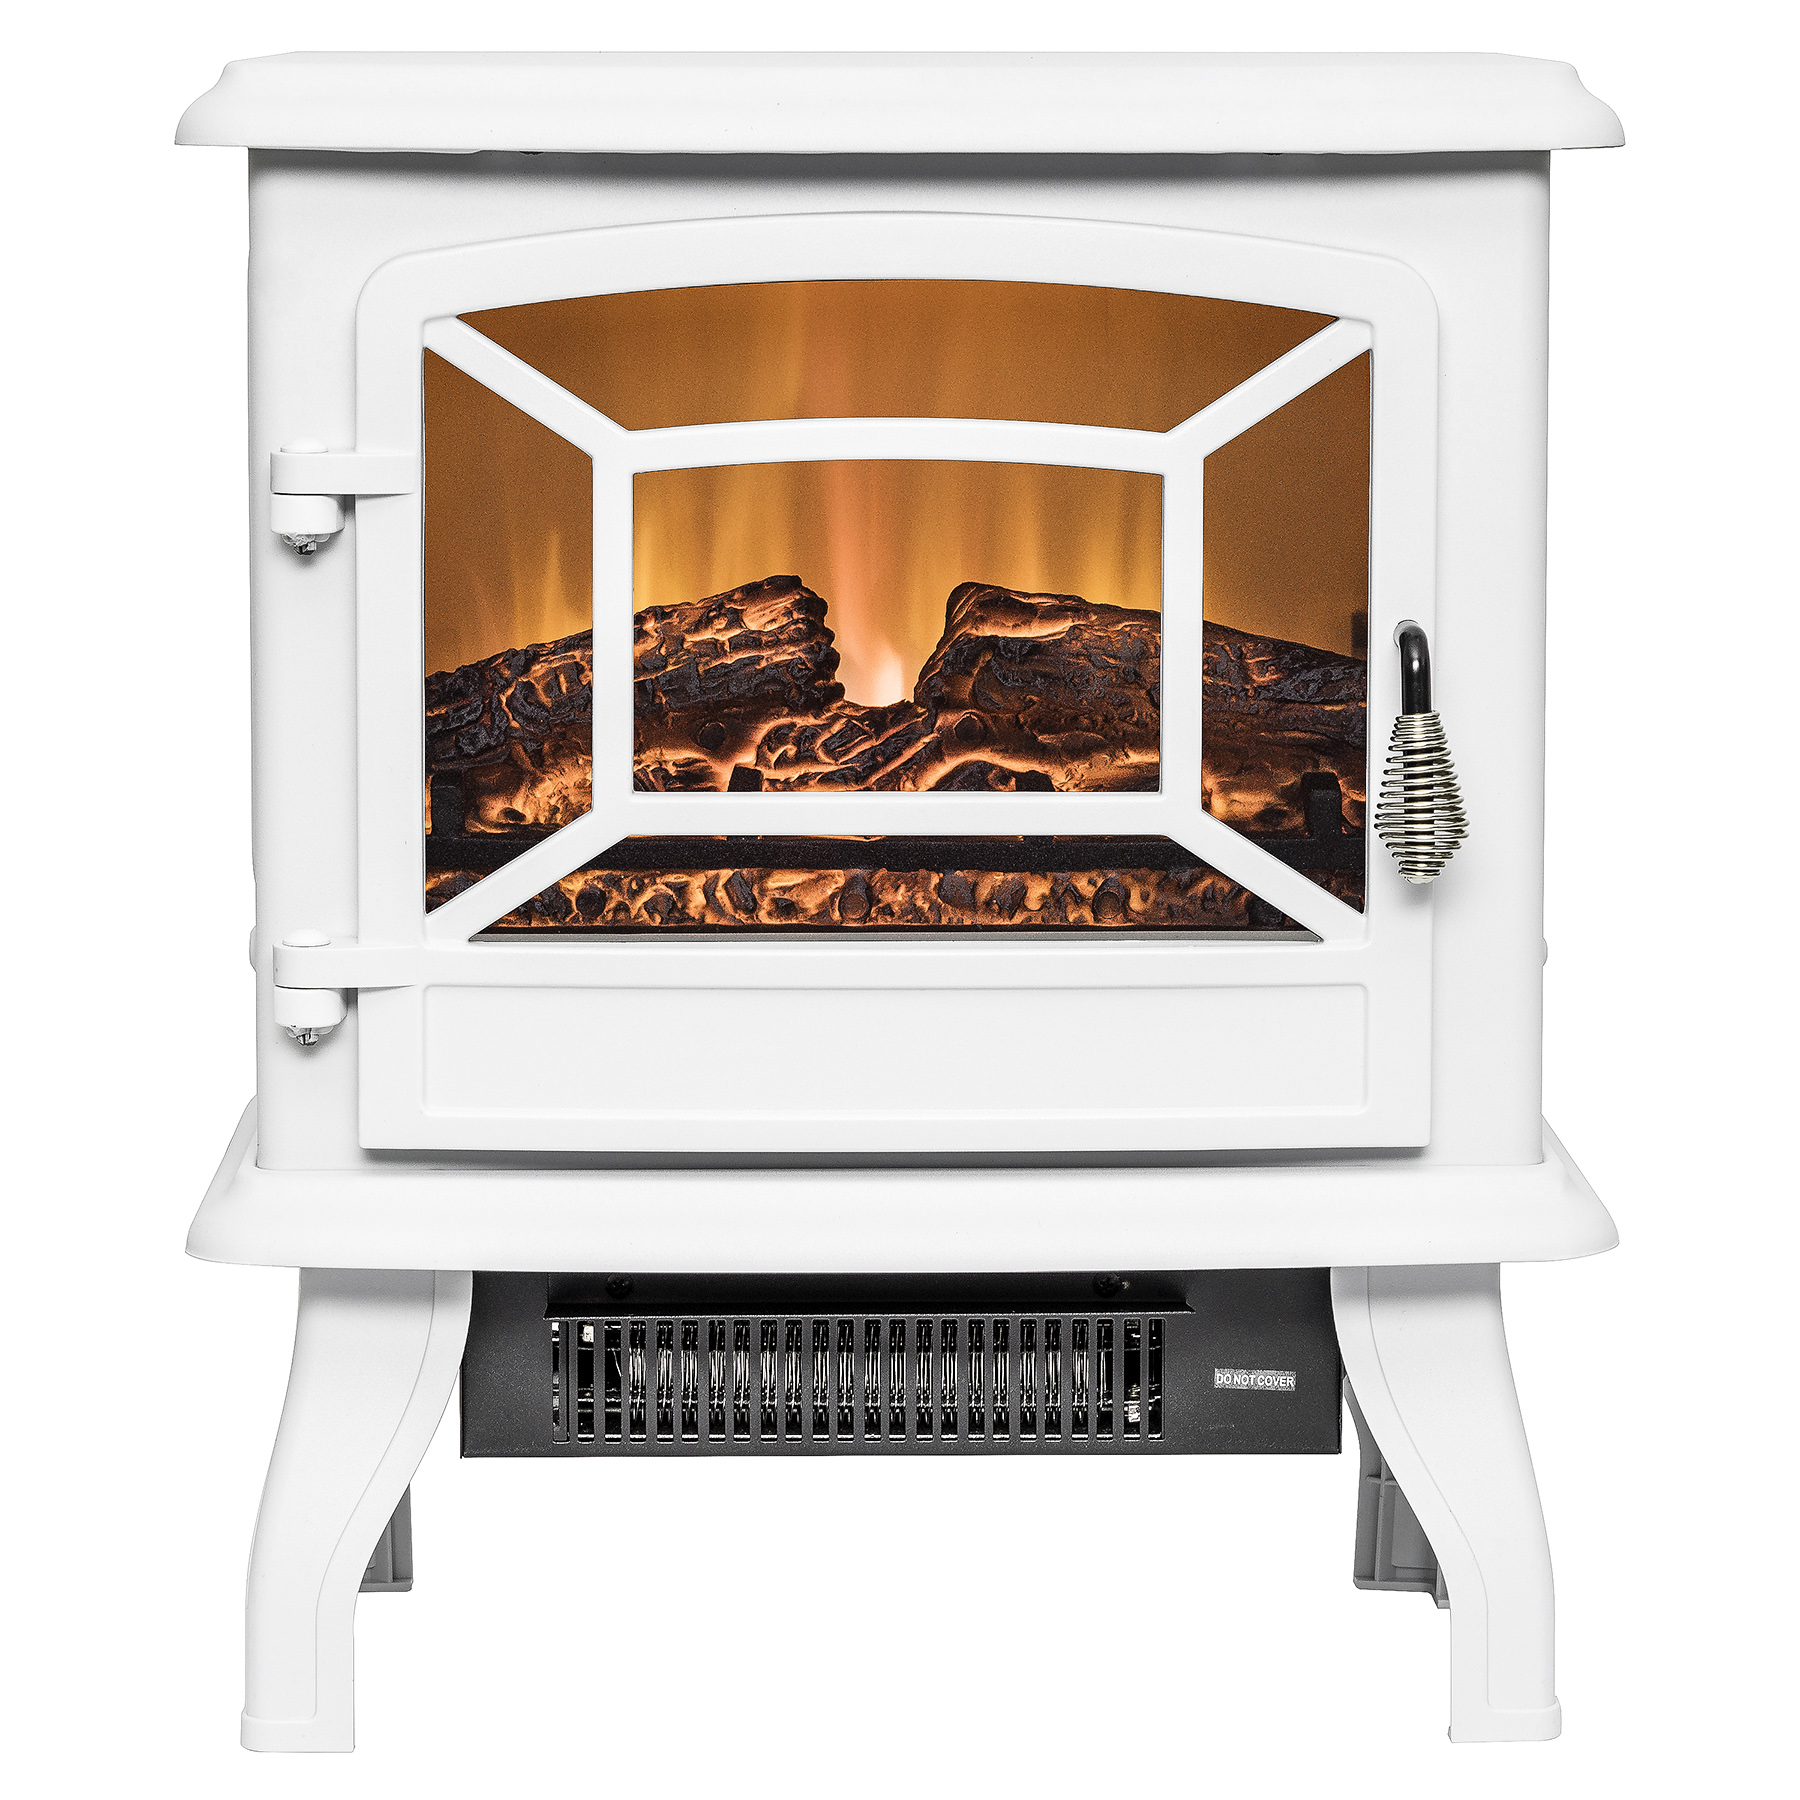 "AKDY FP0080 20"" Freestanding White Portable Electric Fireplace Heater 3D Flames Firebox w/ Logs"